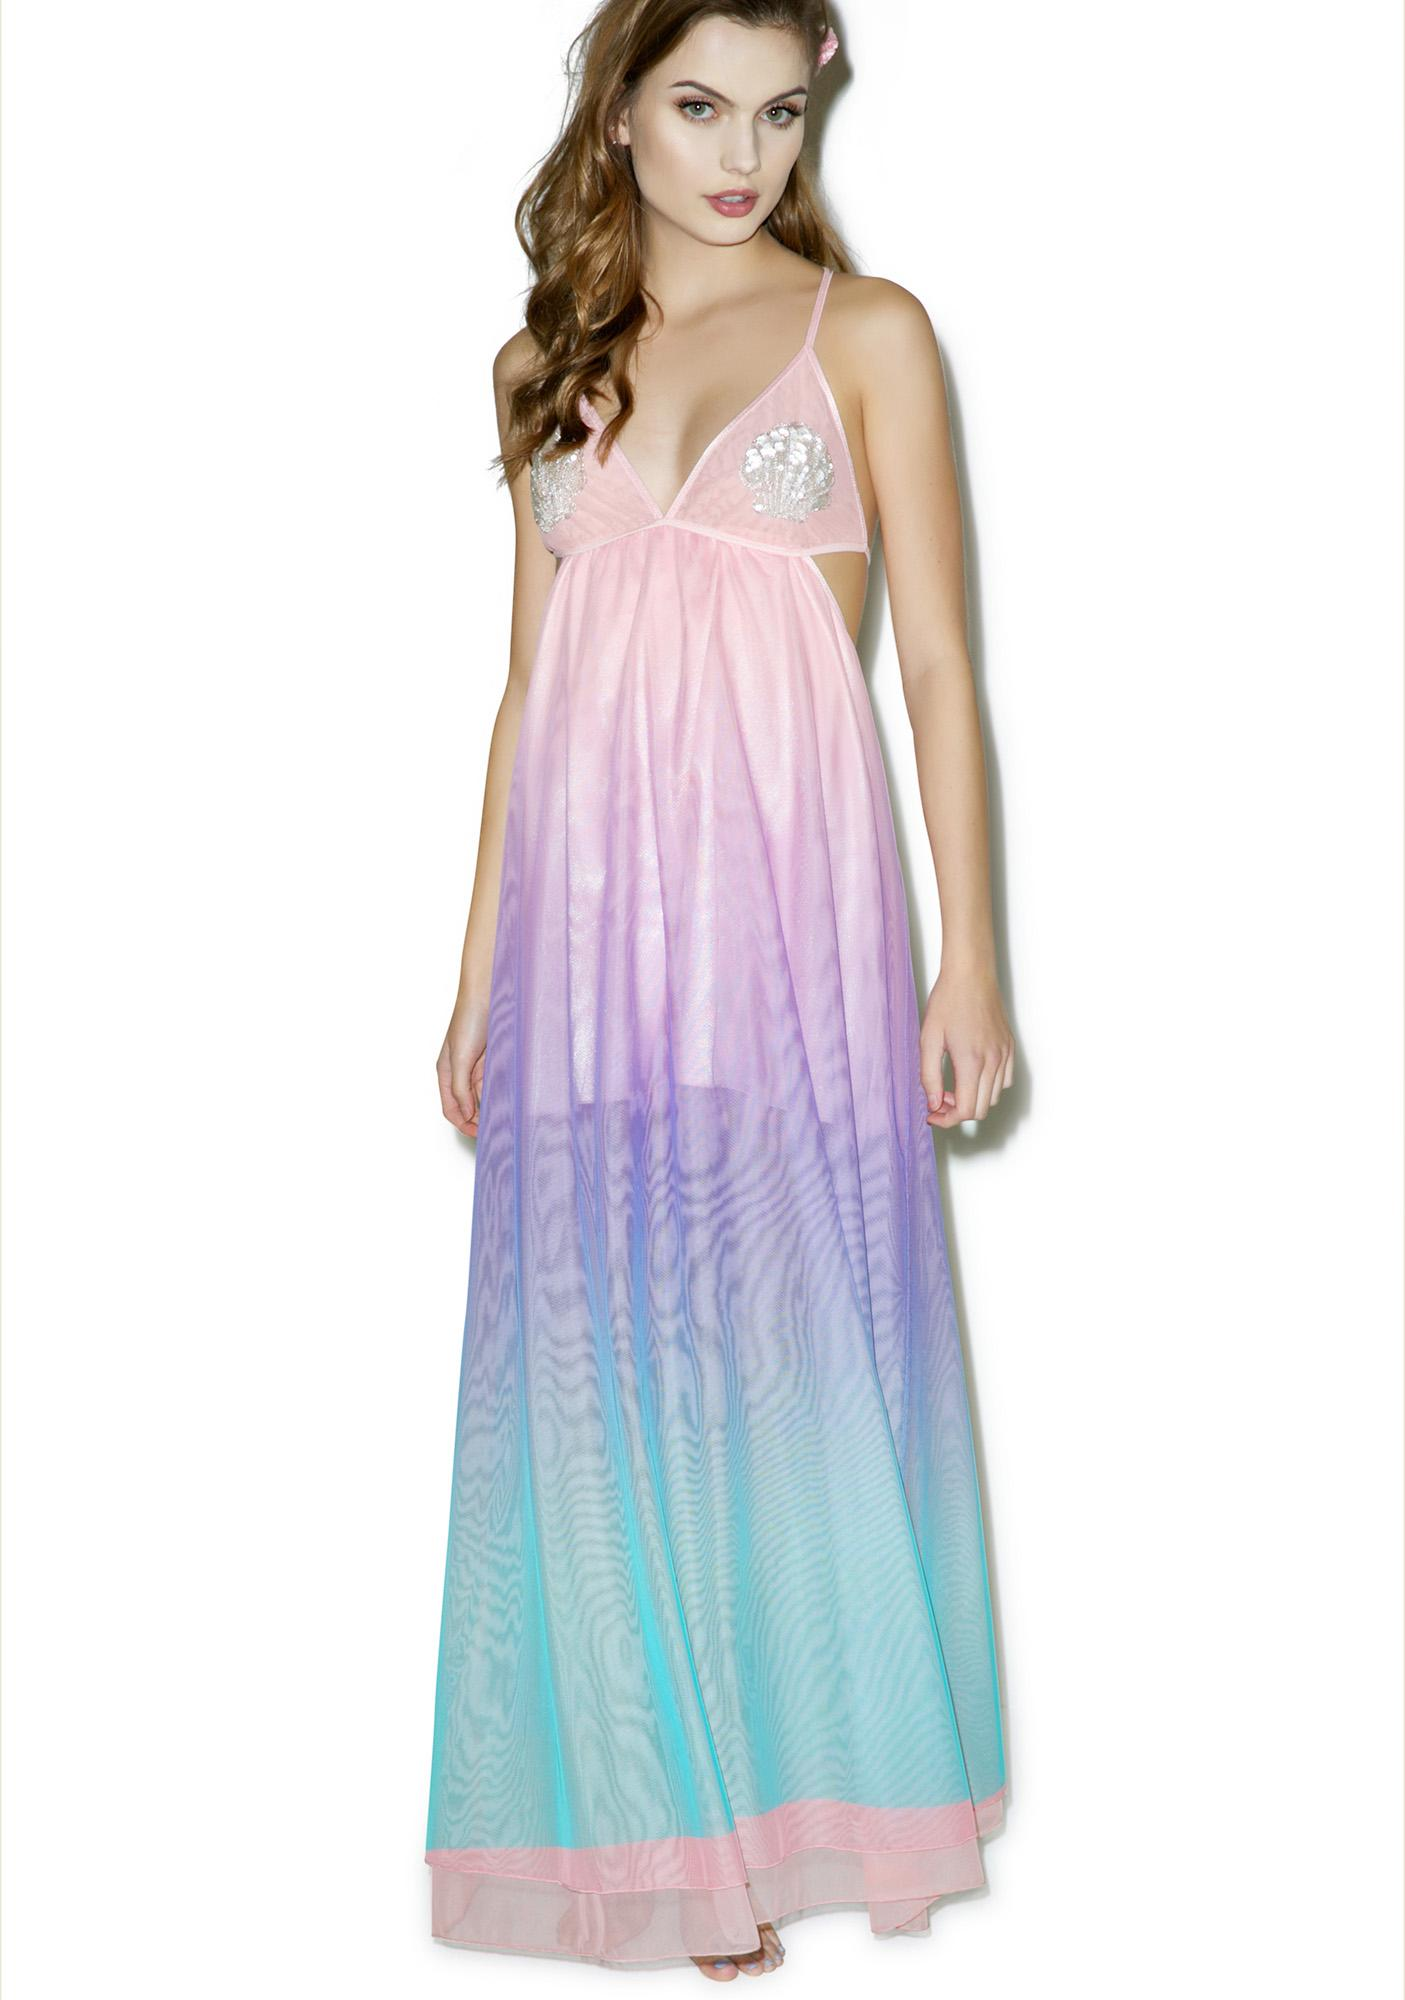 Sugar Thrillz Seamaid Maxi Dress